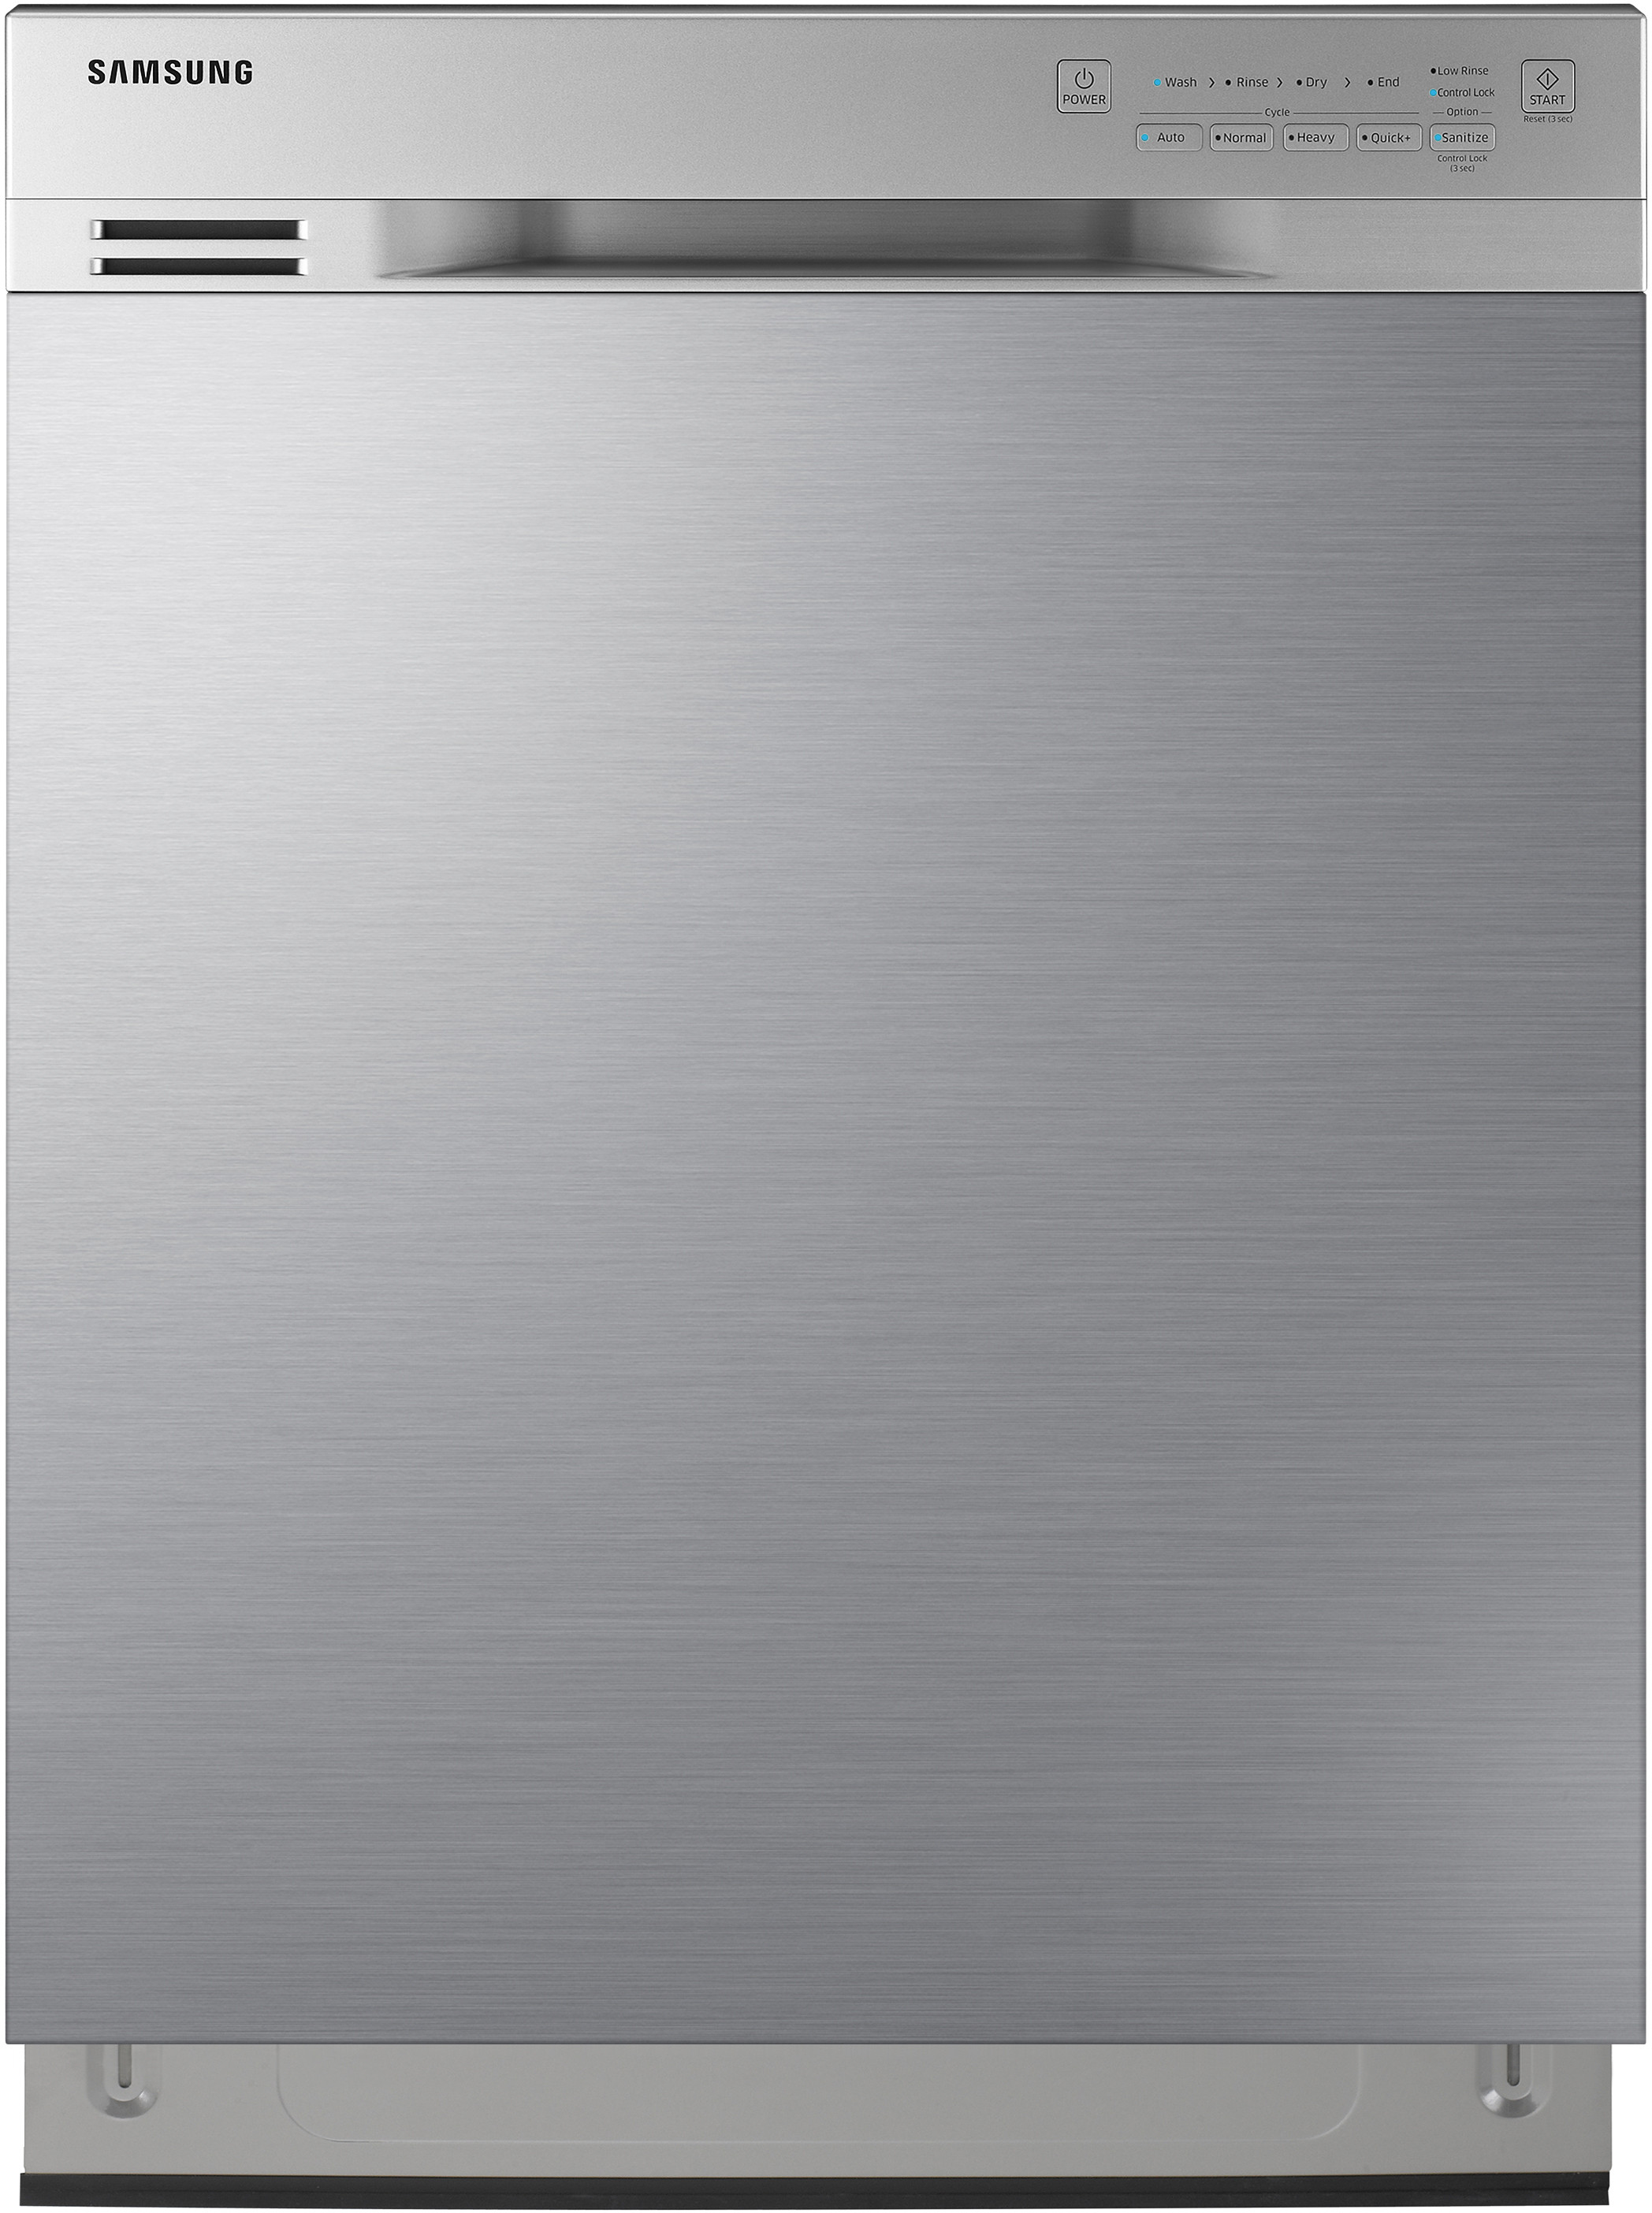 Samsung Dw80j3020us Full Console Dishwasher With 15 Place